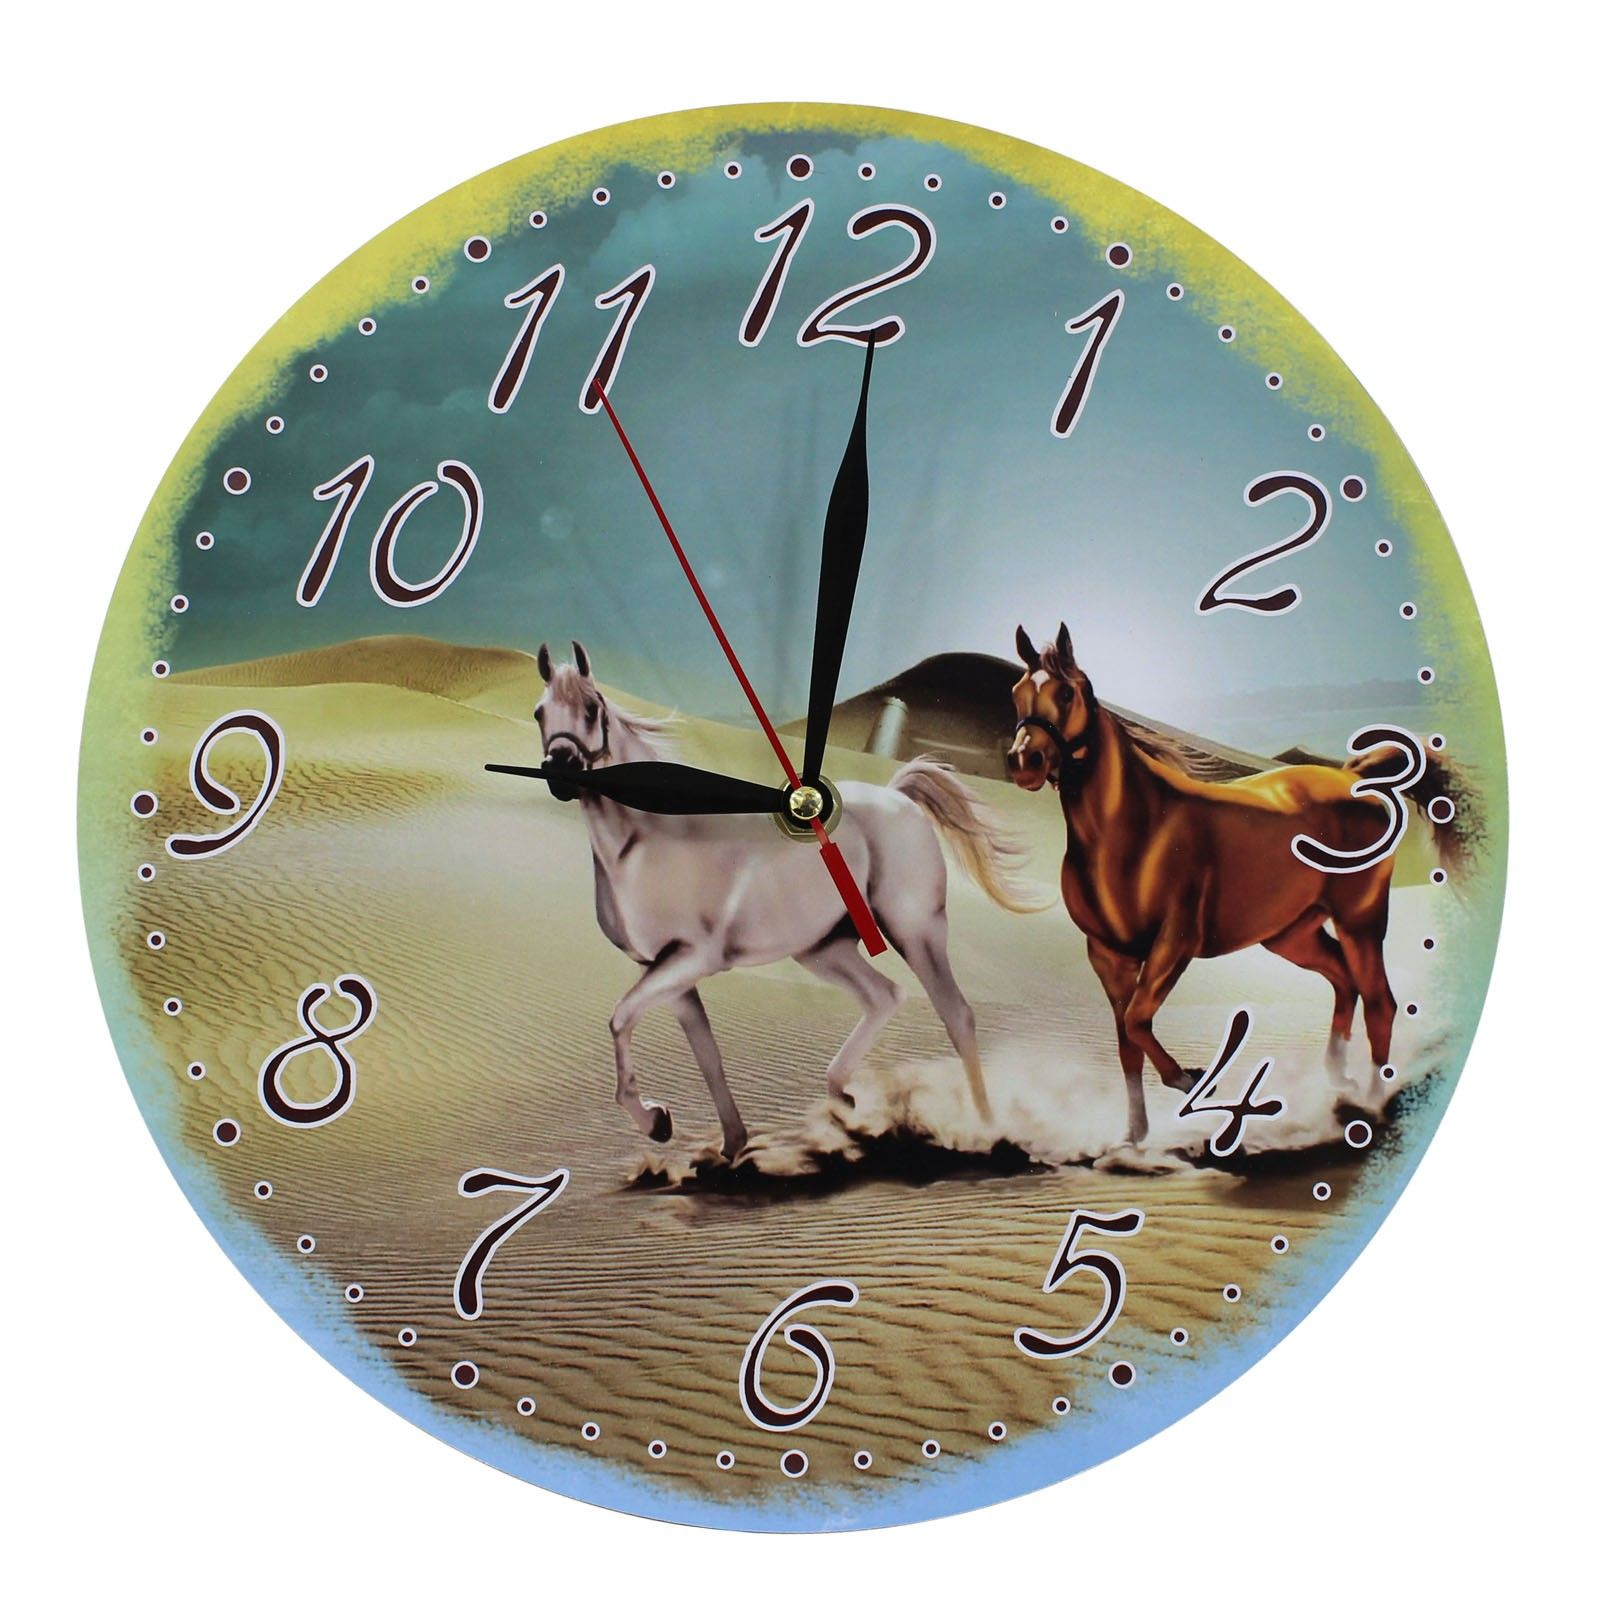 This listing is for one Home Decoration MDF Wild Horses in Desert Scene Wall Clock. Price £12.99